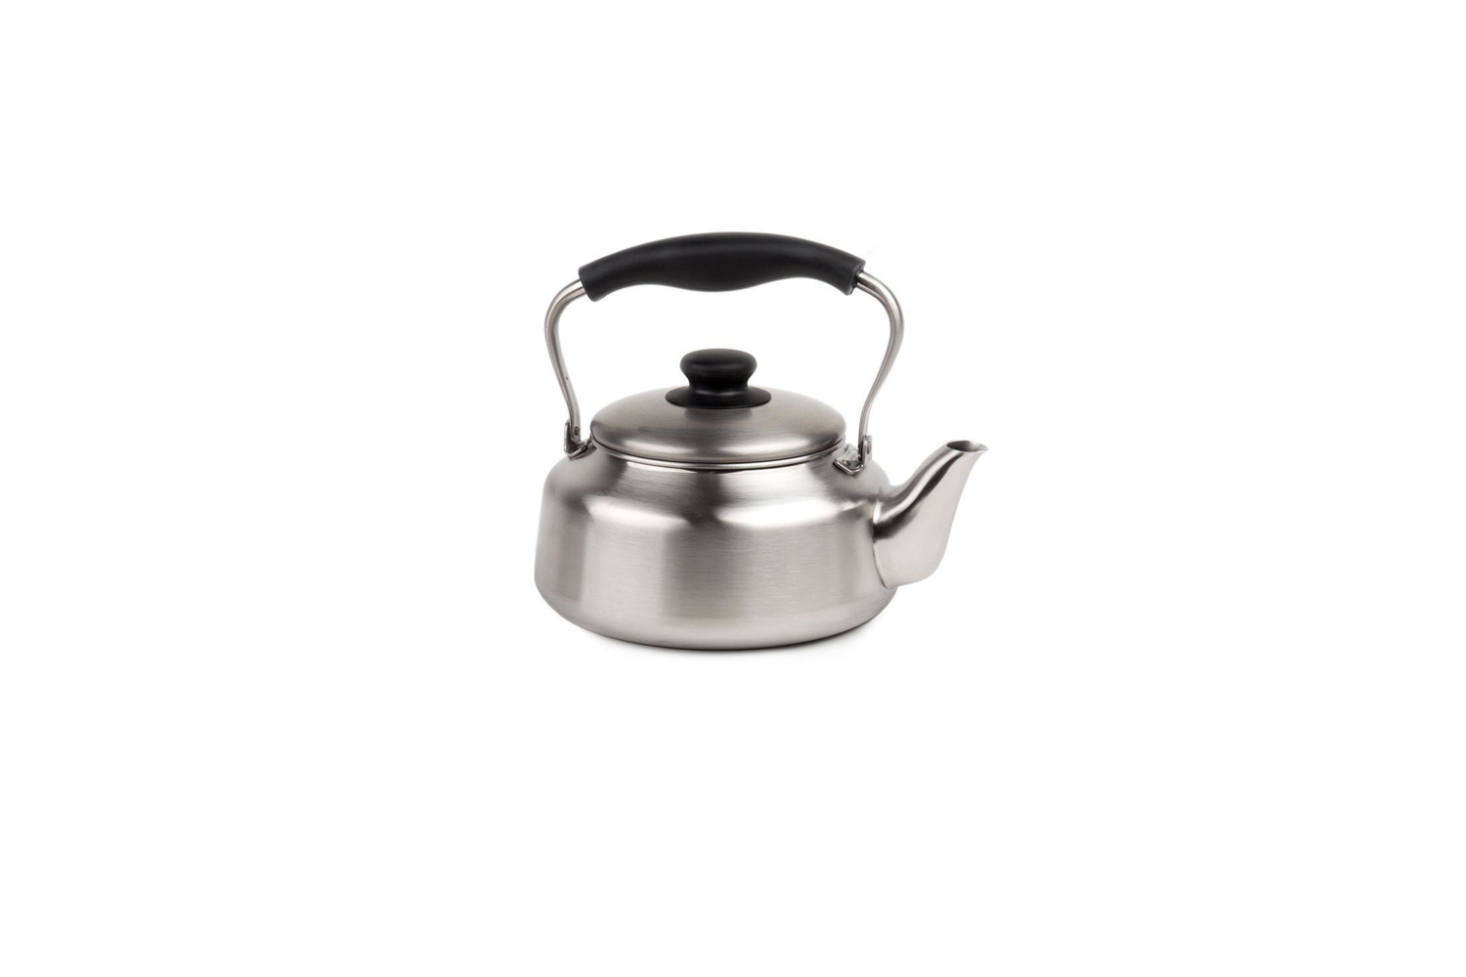 TheSori Yanagi Stainless Steel Kettlein matte brushed steel is a longtime Remodelista favorite and it's available for $78.80 on Amazon.